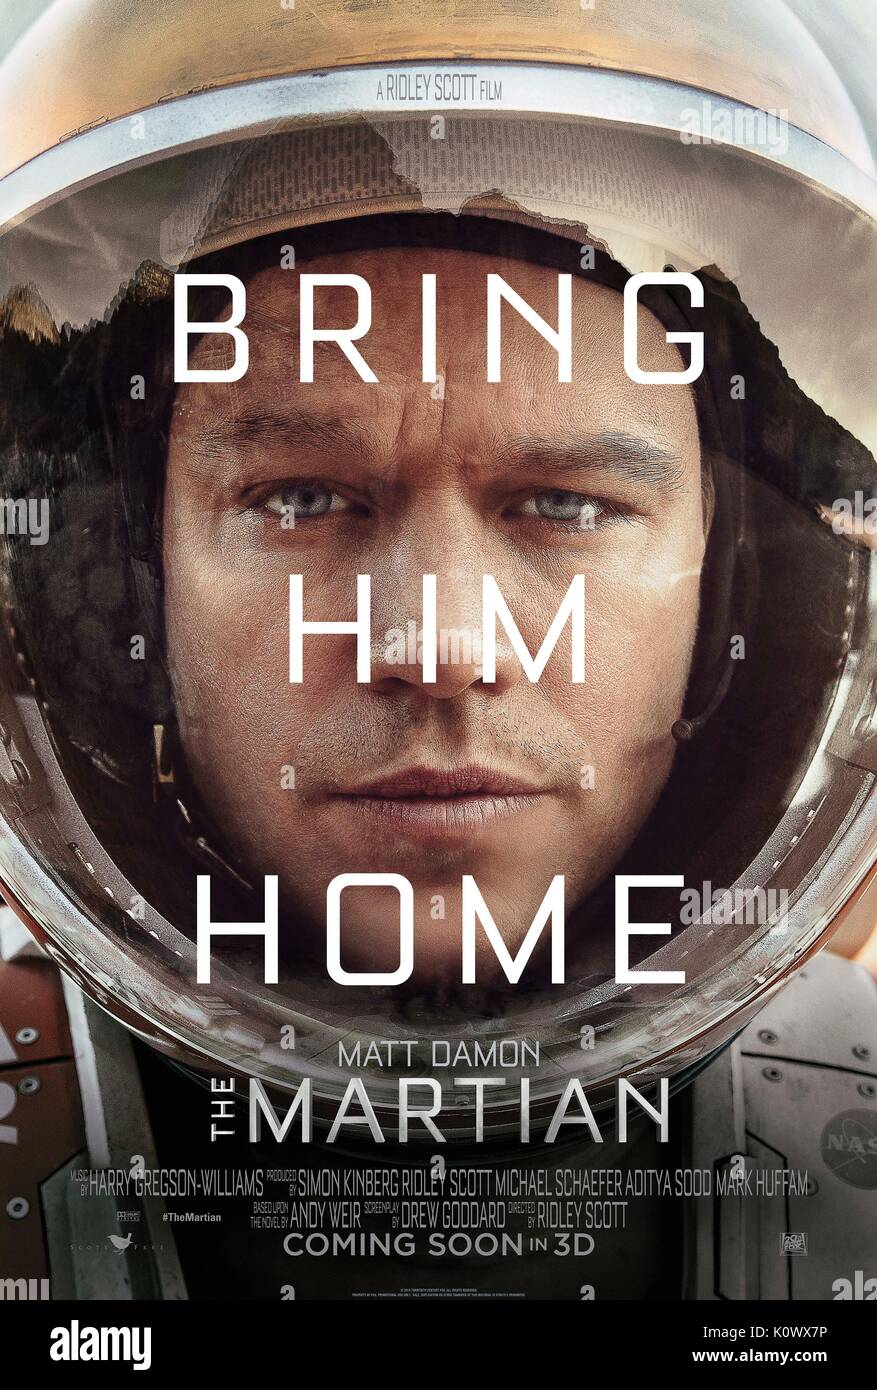 MATT DAMON POSTER THE MARTIAN (2015) - Stock Image